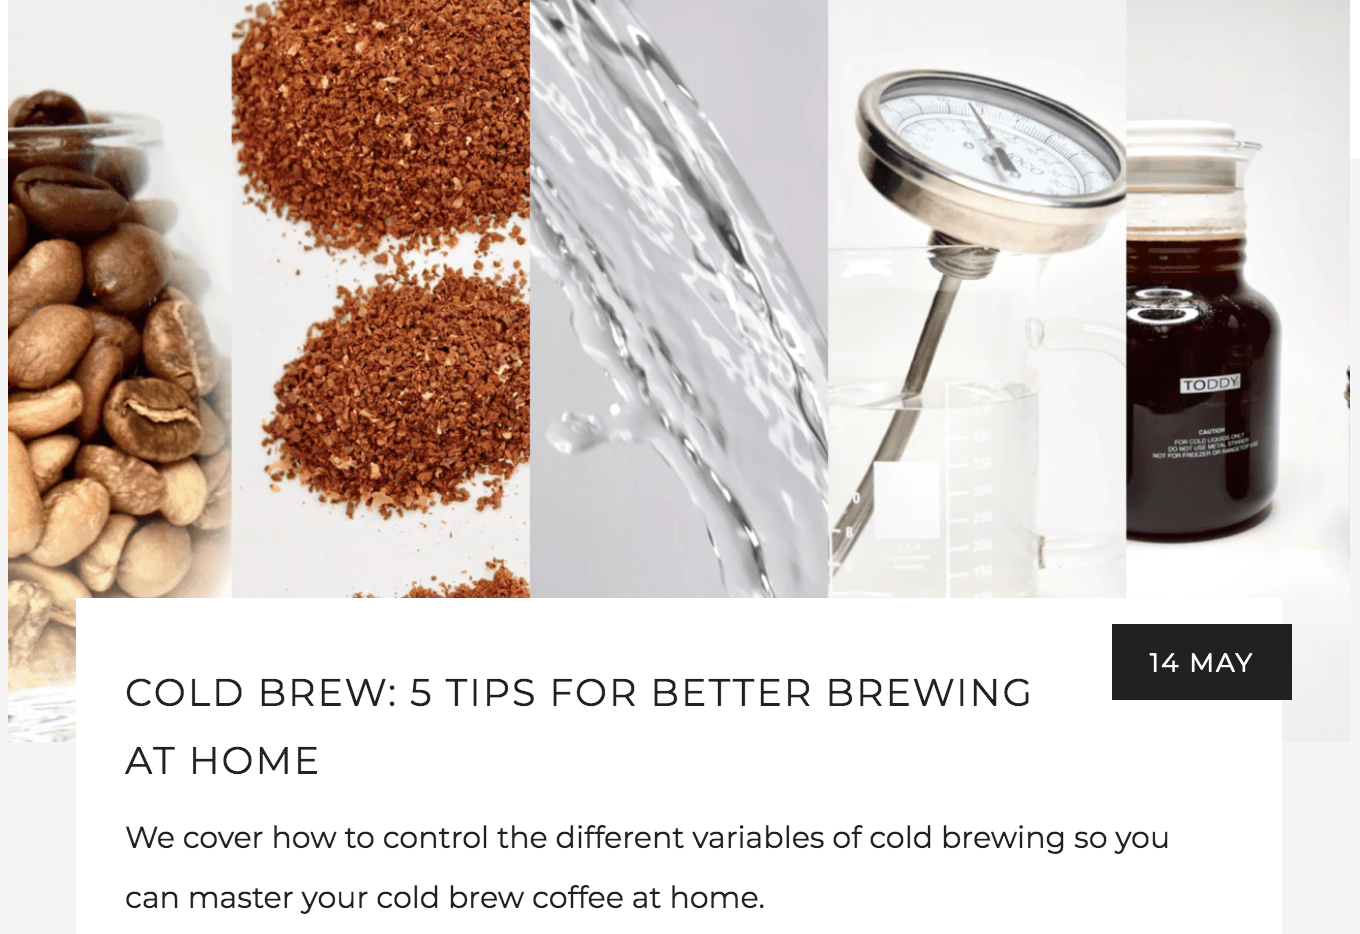 Cold Brew: 5 Tips for Better Brewing At Home | Kaldi's Coffee Blog